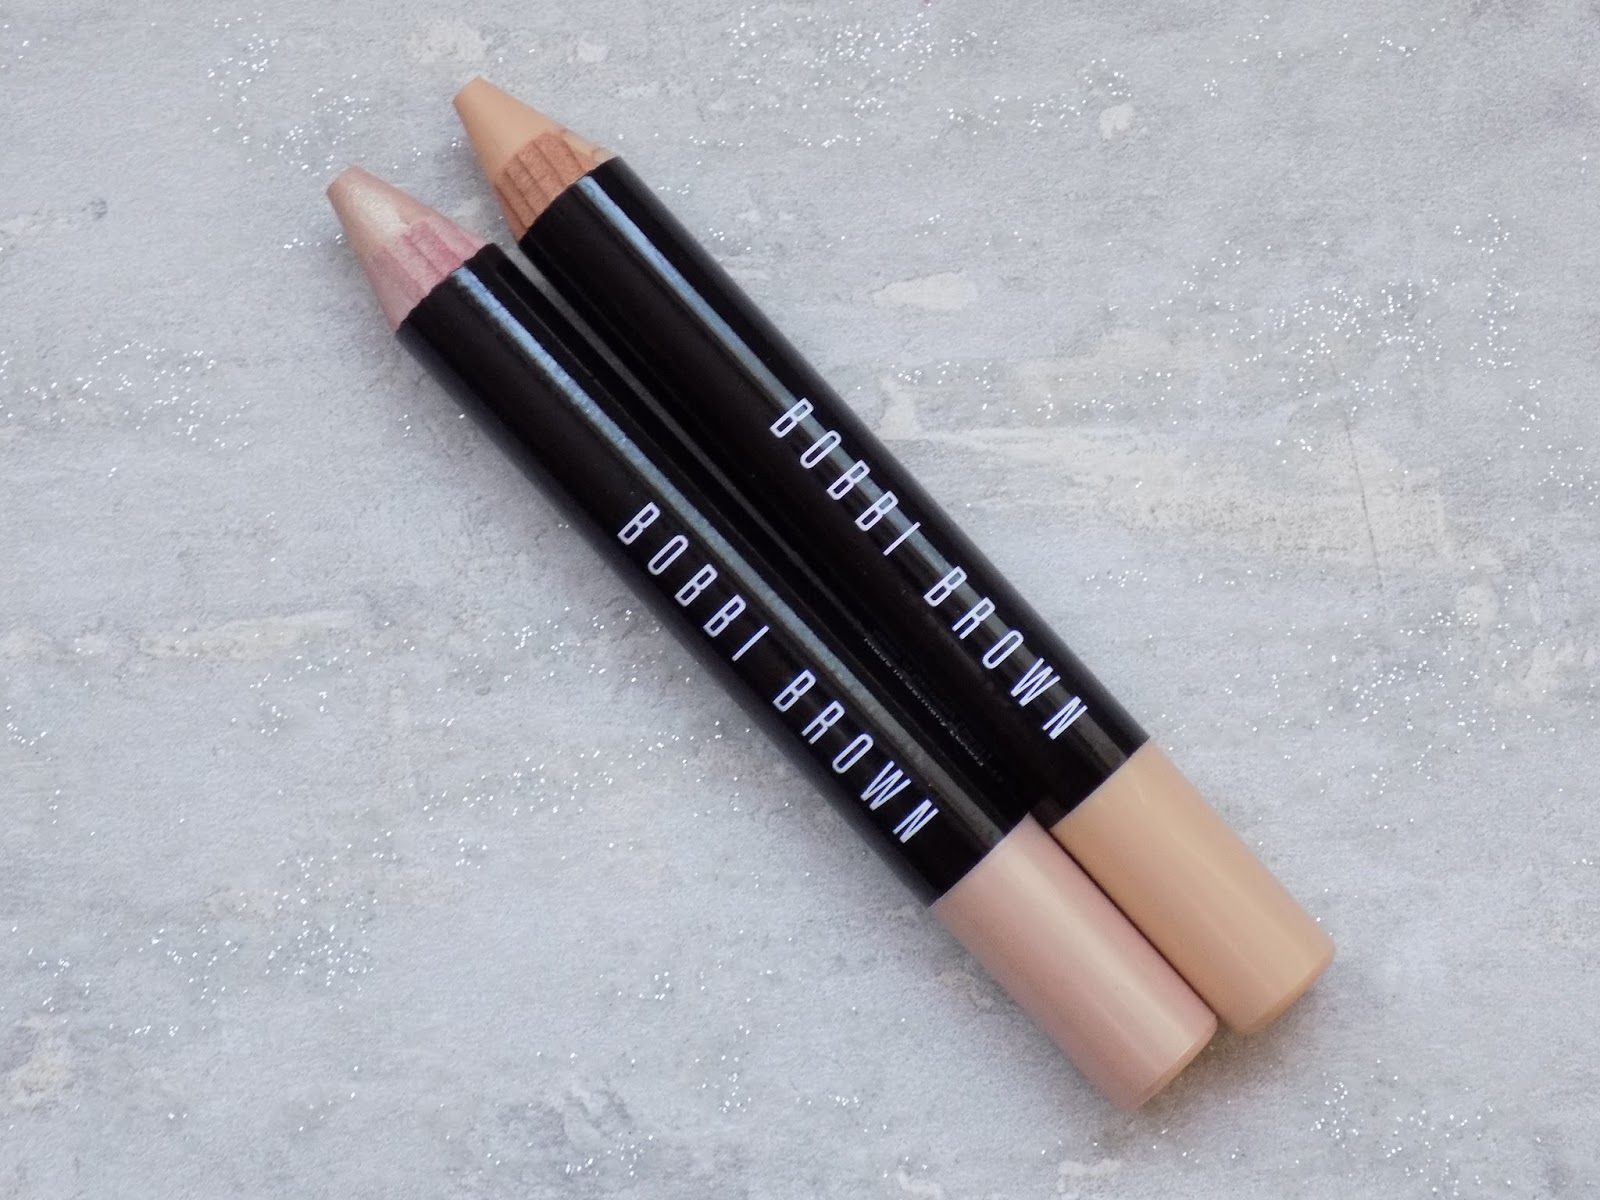 Retouching Face Pencil by Bobbi Brown Cosmetics #4